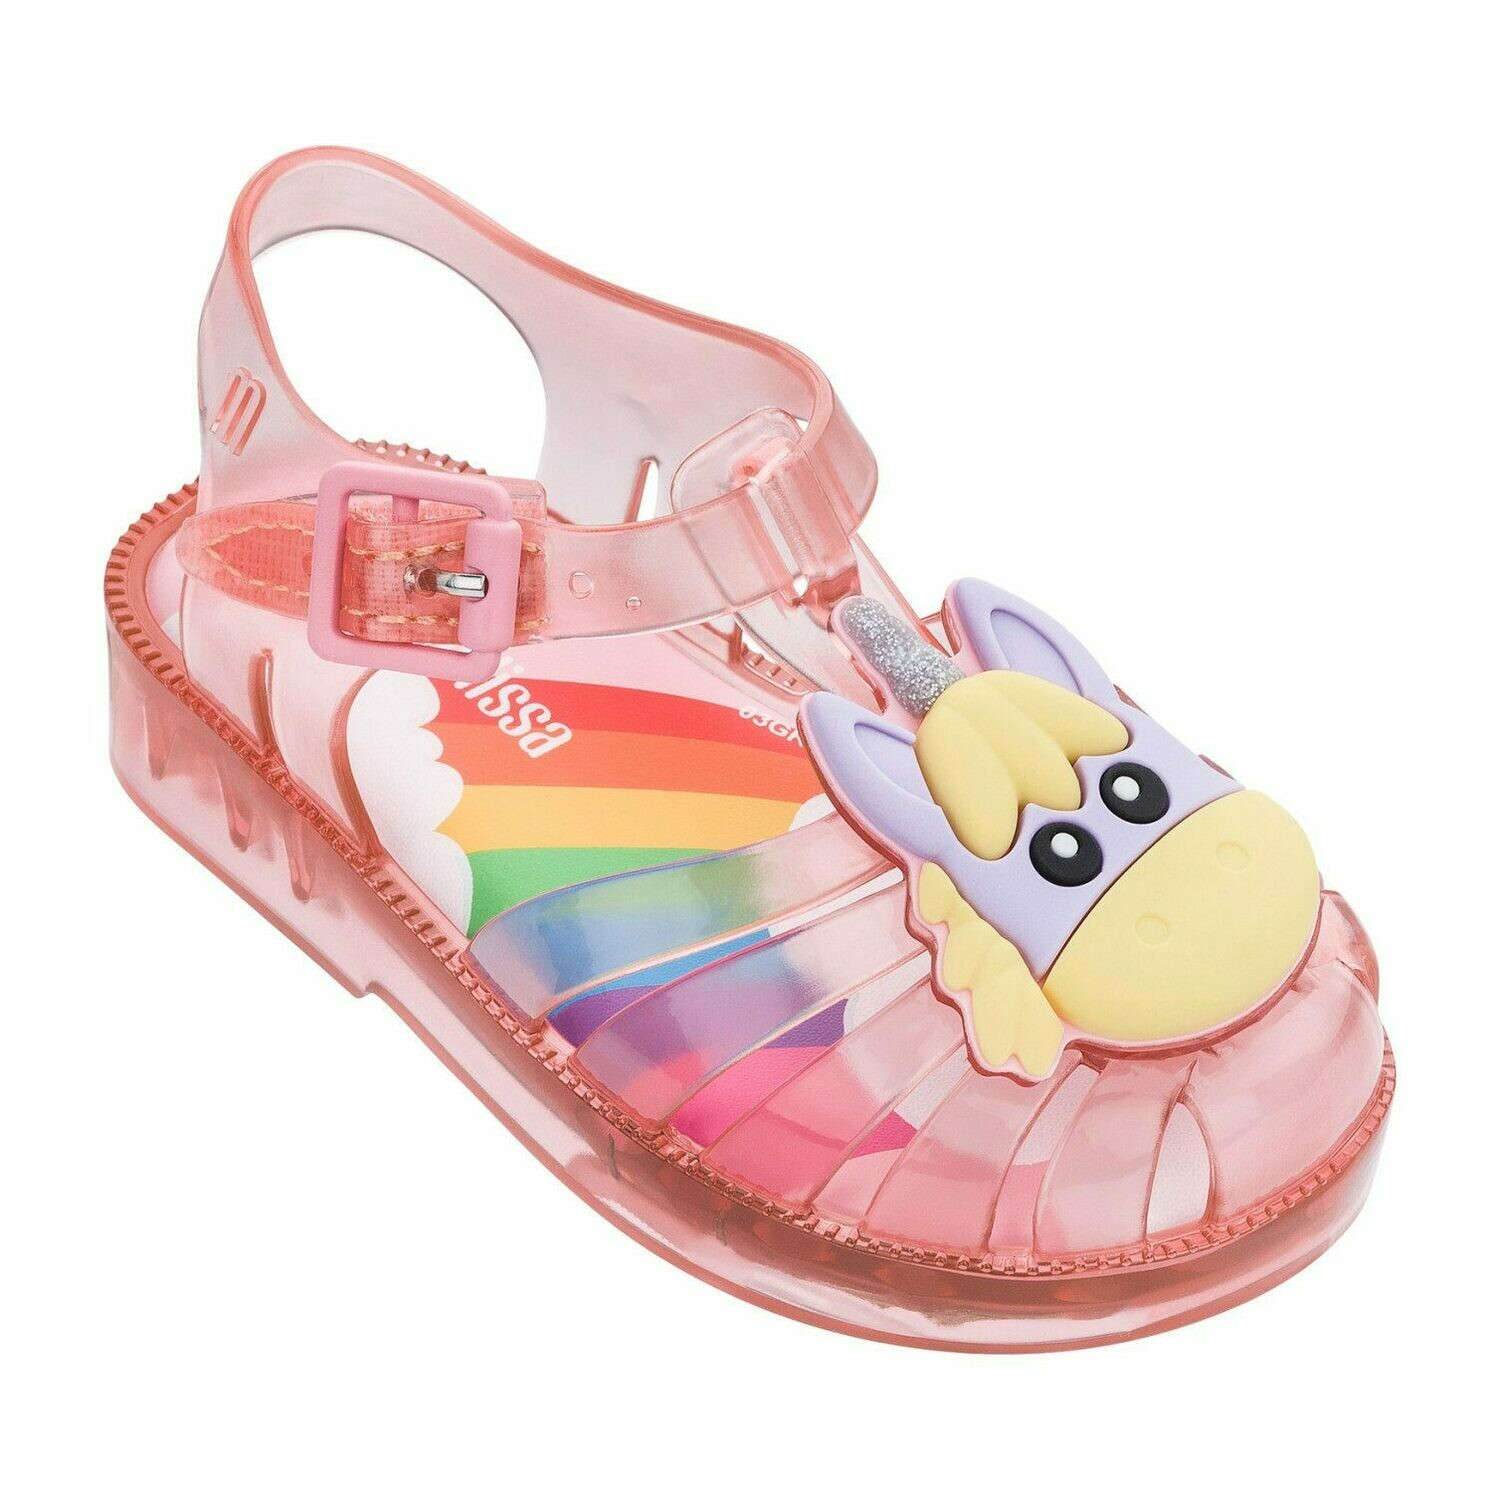 Unicorn Possession Sandals